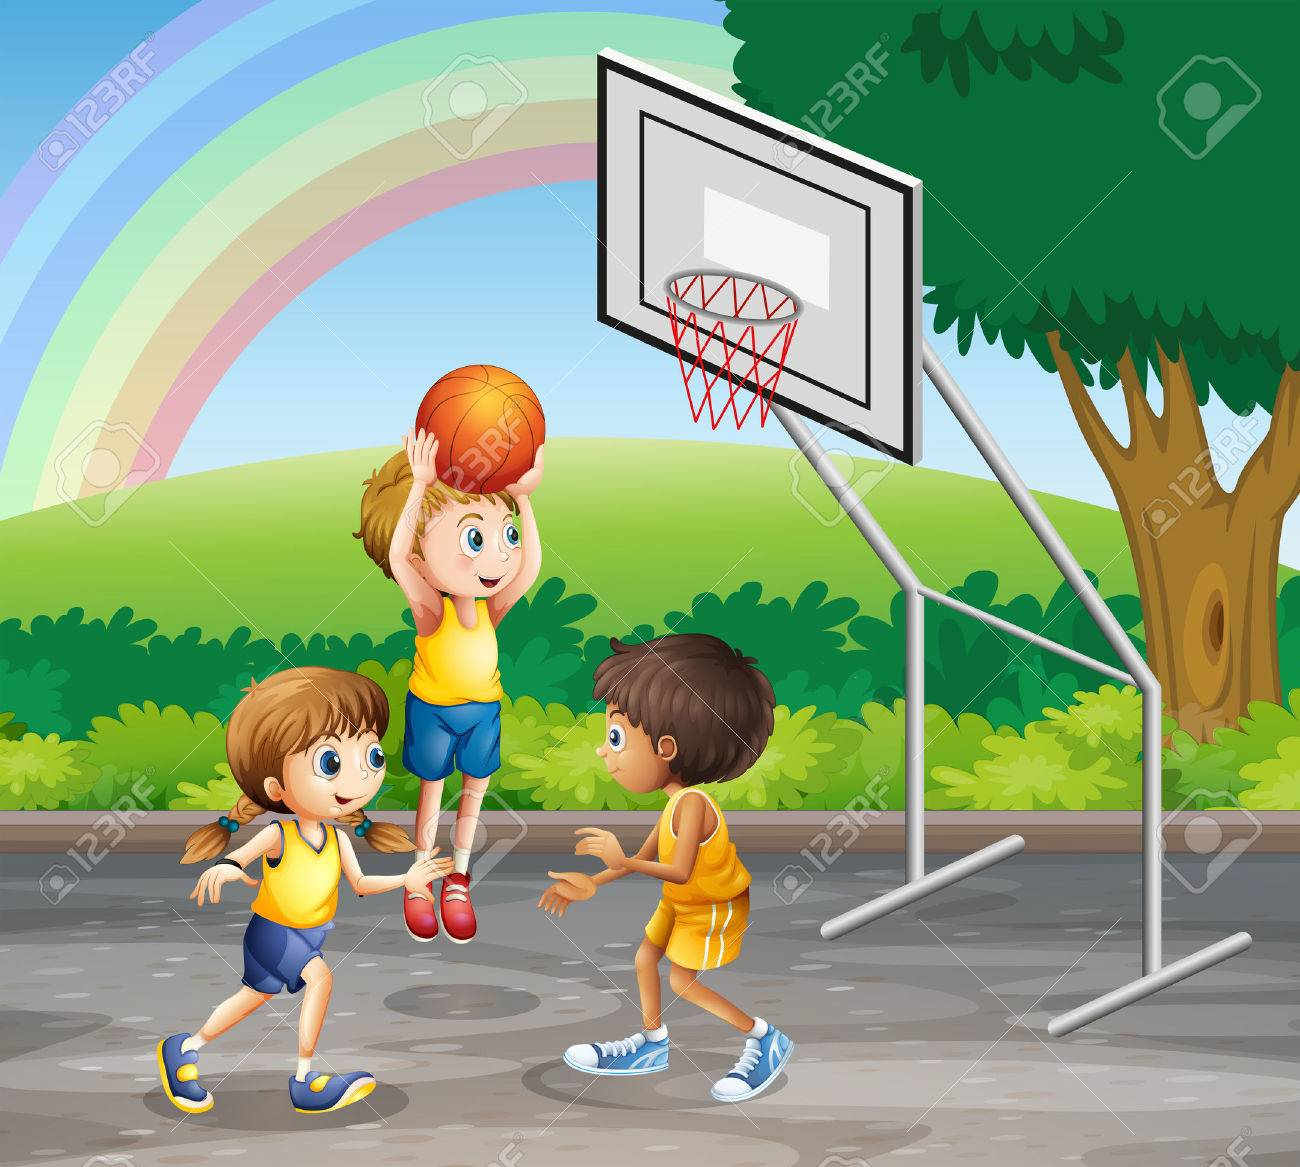 Three children playing basketball at the court illustration.